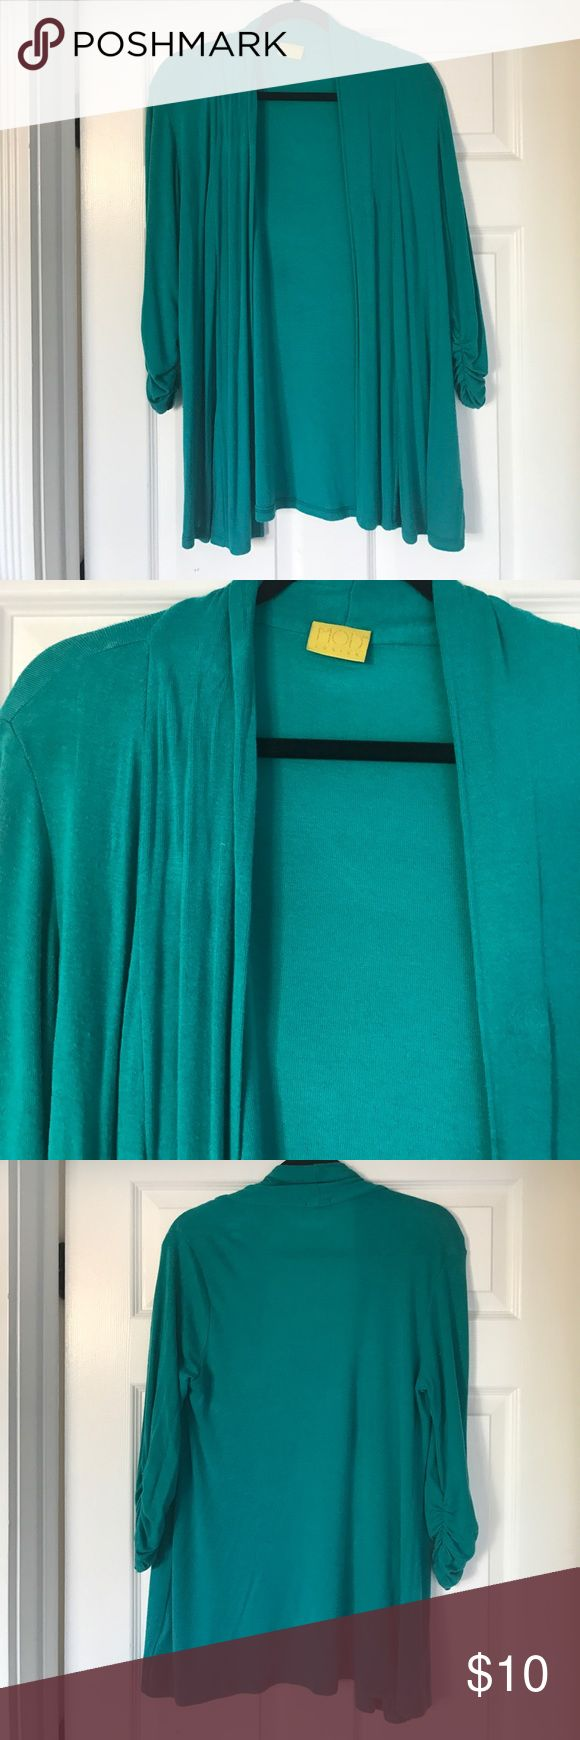 Nordstrom Turquoise cardigan S Hardly worn, super soft. Purchased @ Nordstrom MOD Sweaters Cardigans